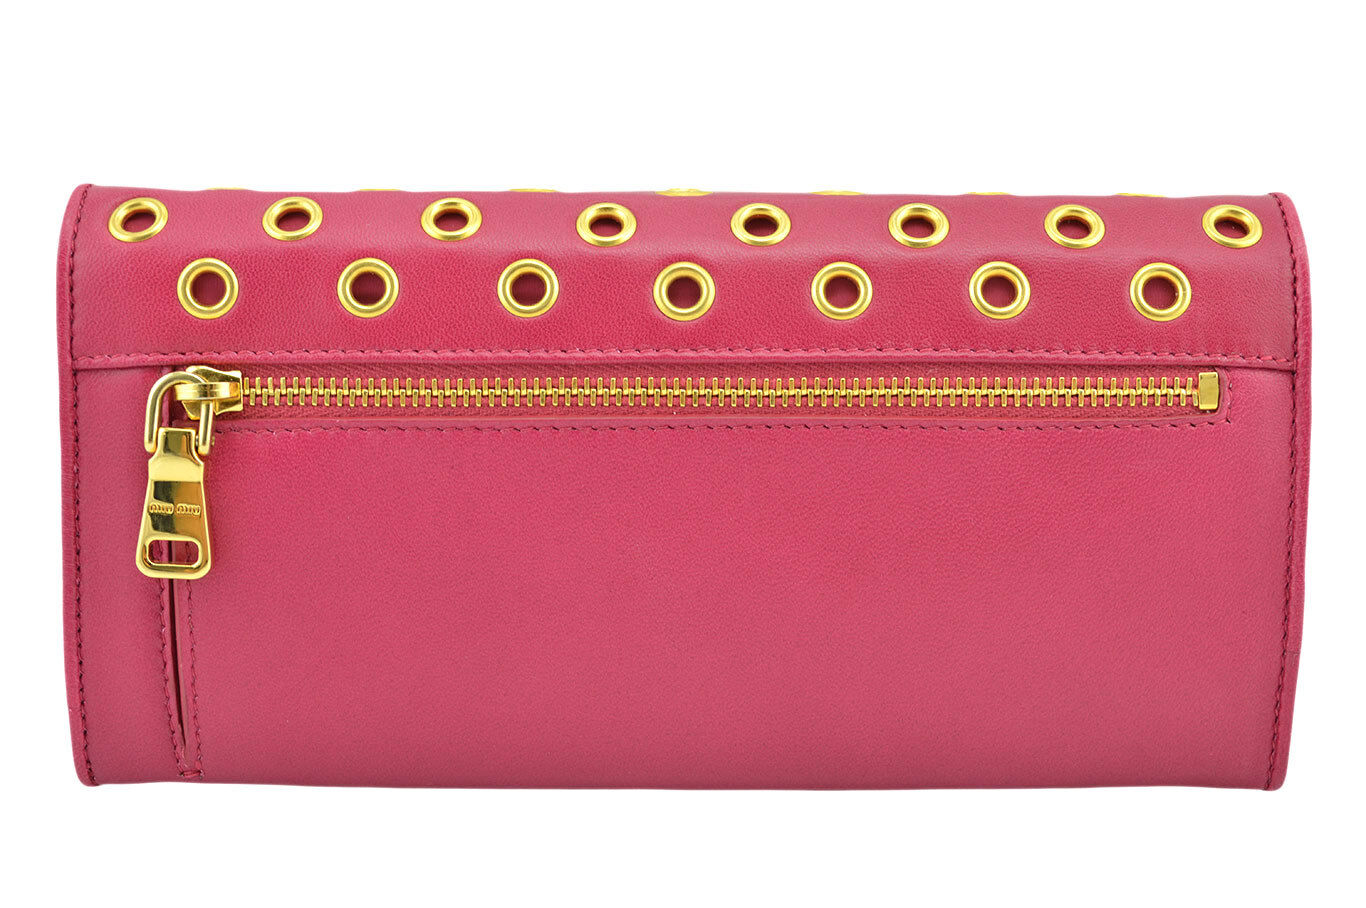 16316c08701e Details about  650 MIU MIU Fuchsia NAPPA VELE Leather Gold Rings Clutch  Wallet LIMITED EDITION